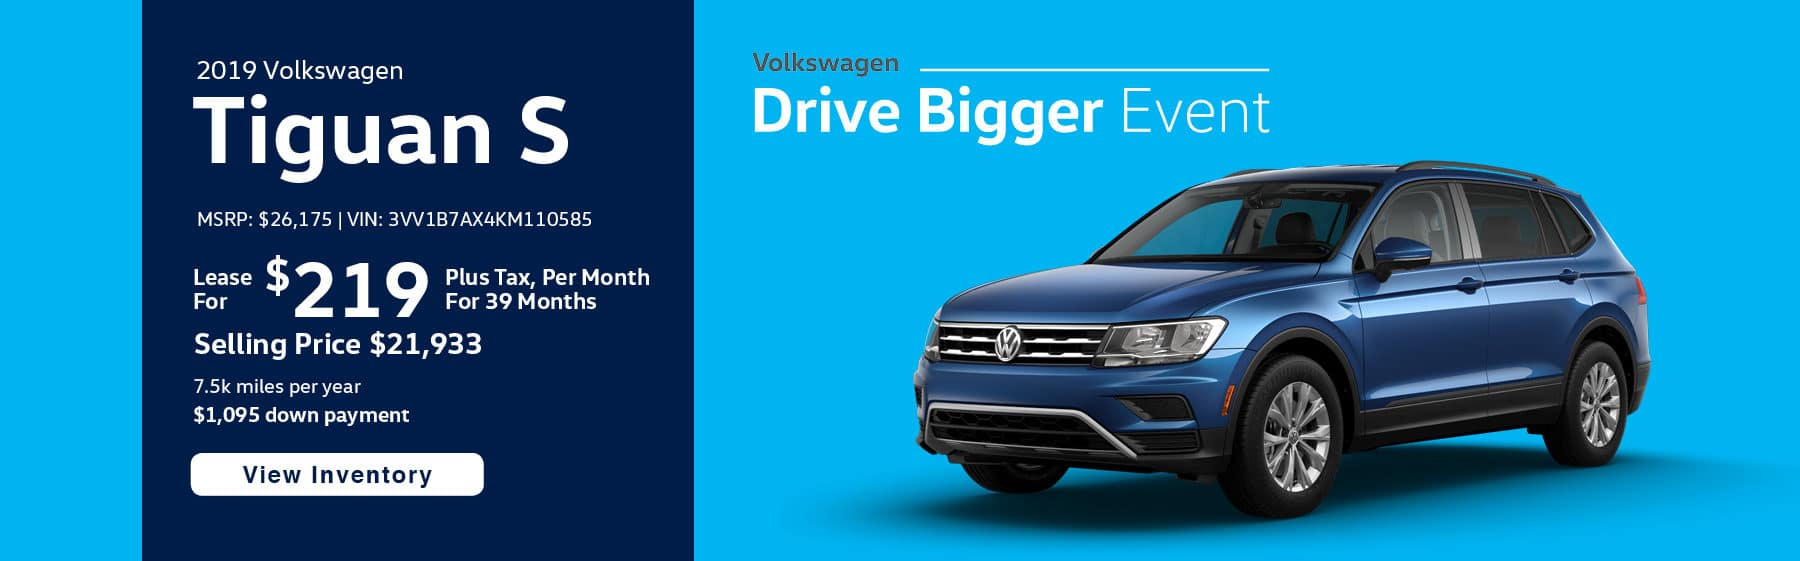 Lease the 2019 Tiguan S for $219 per month, plus tax for 39 months.